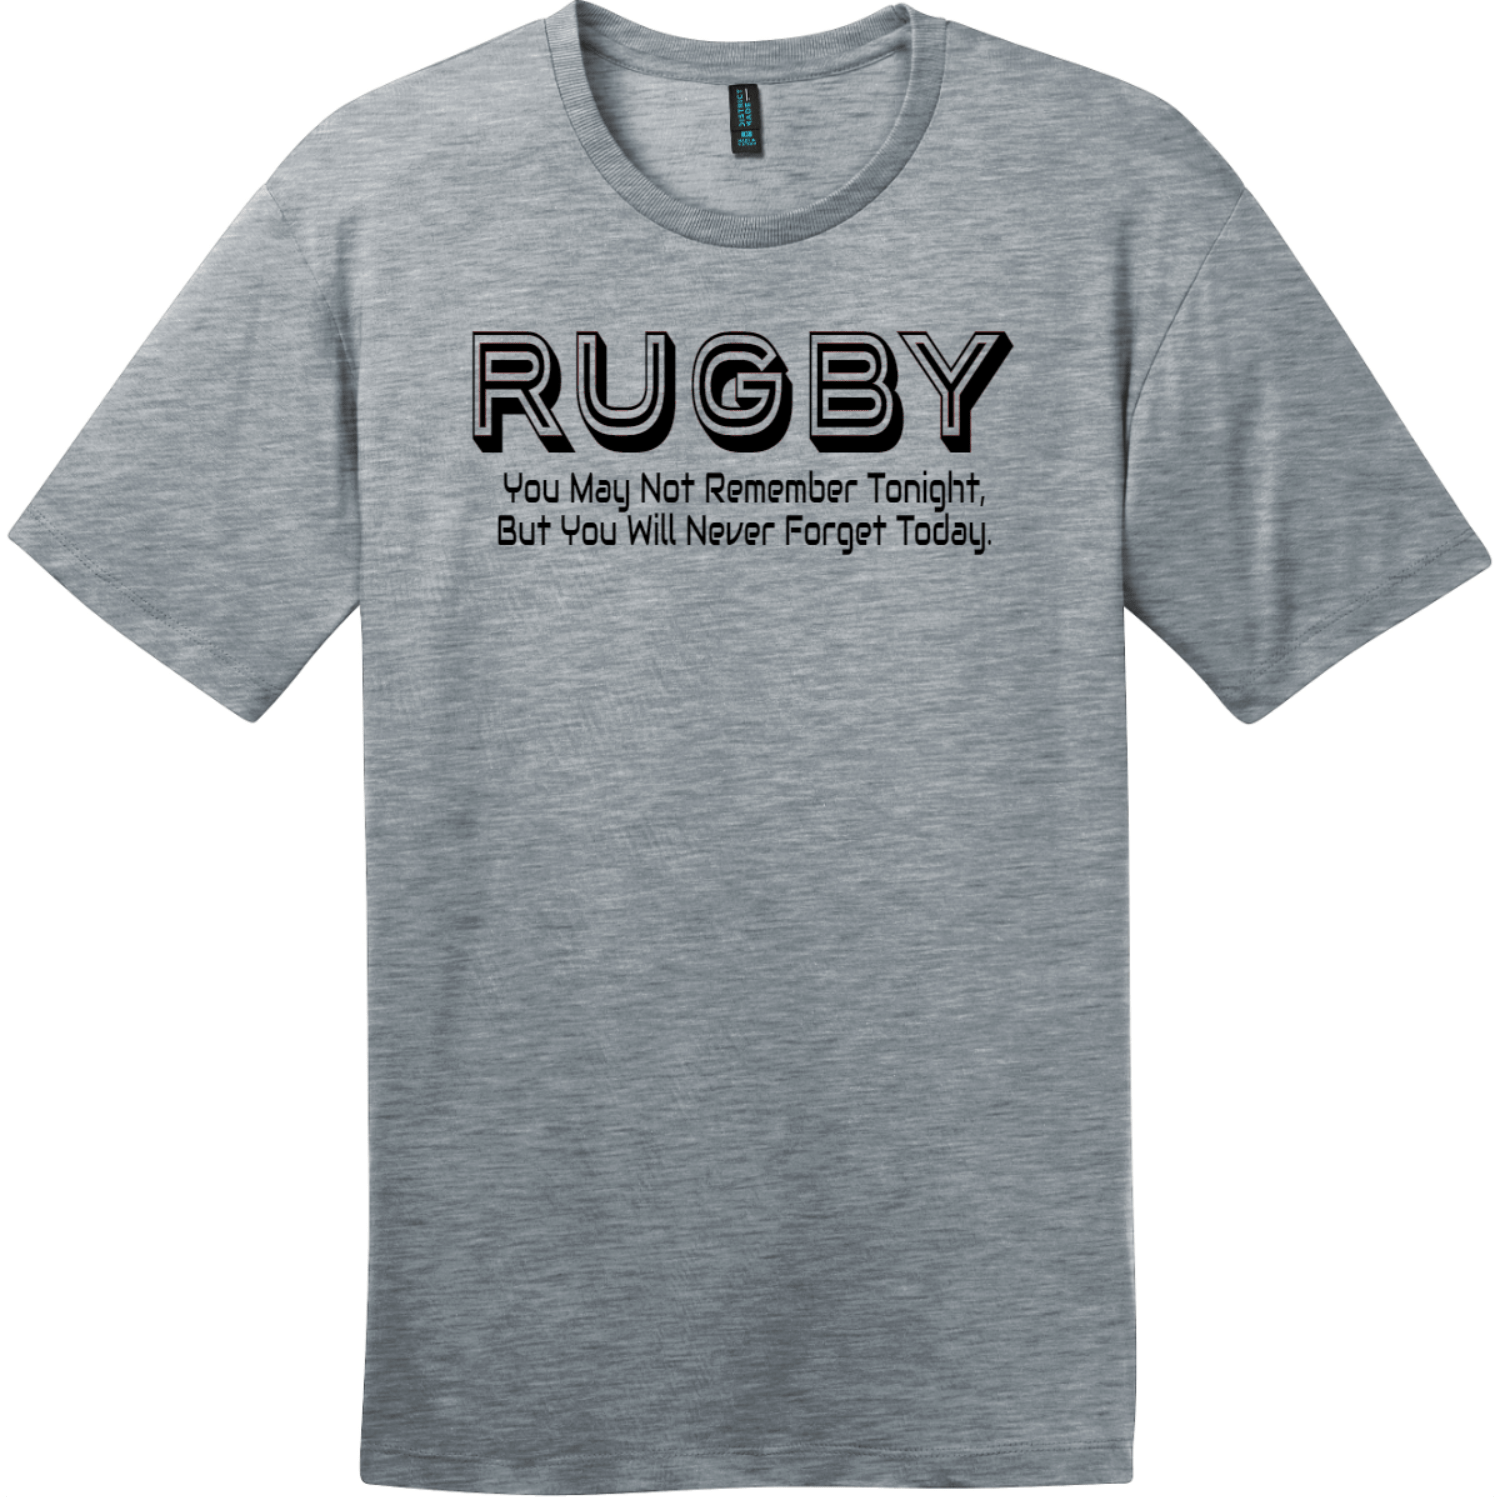 Rugby You May Not Remember Tonight T-Shirt Heathered Steel District Perfect Weight Tee DT104